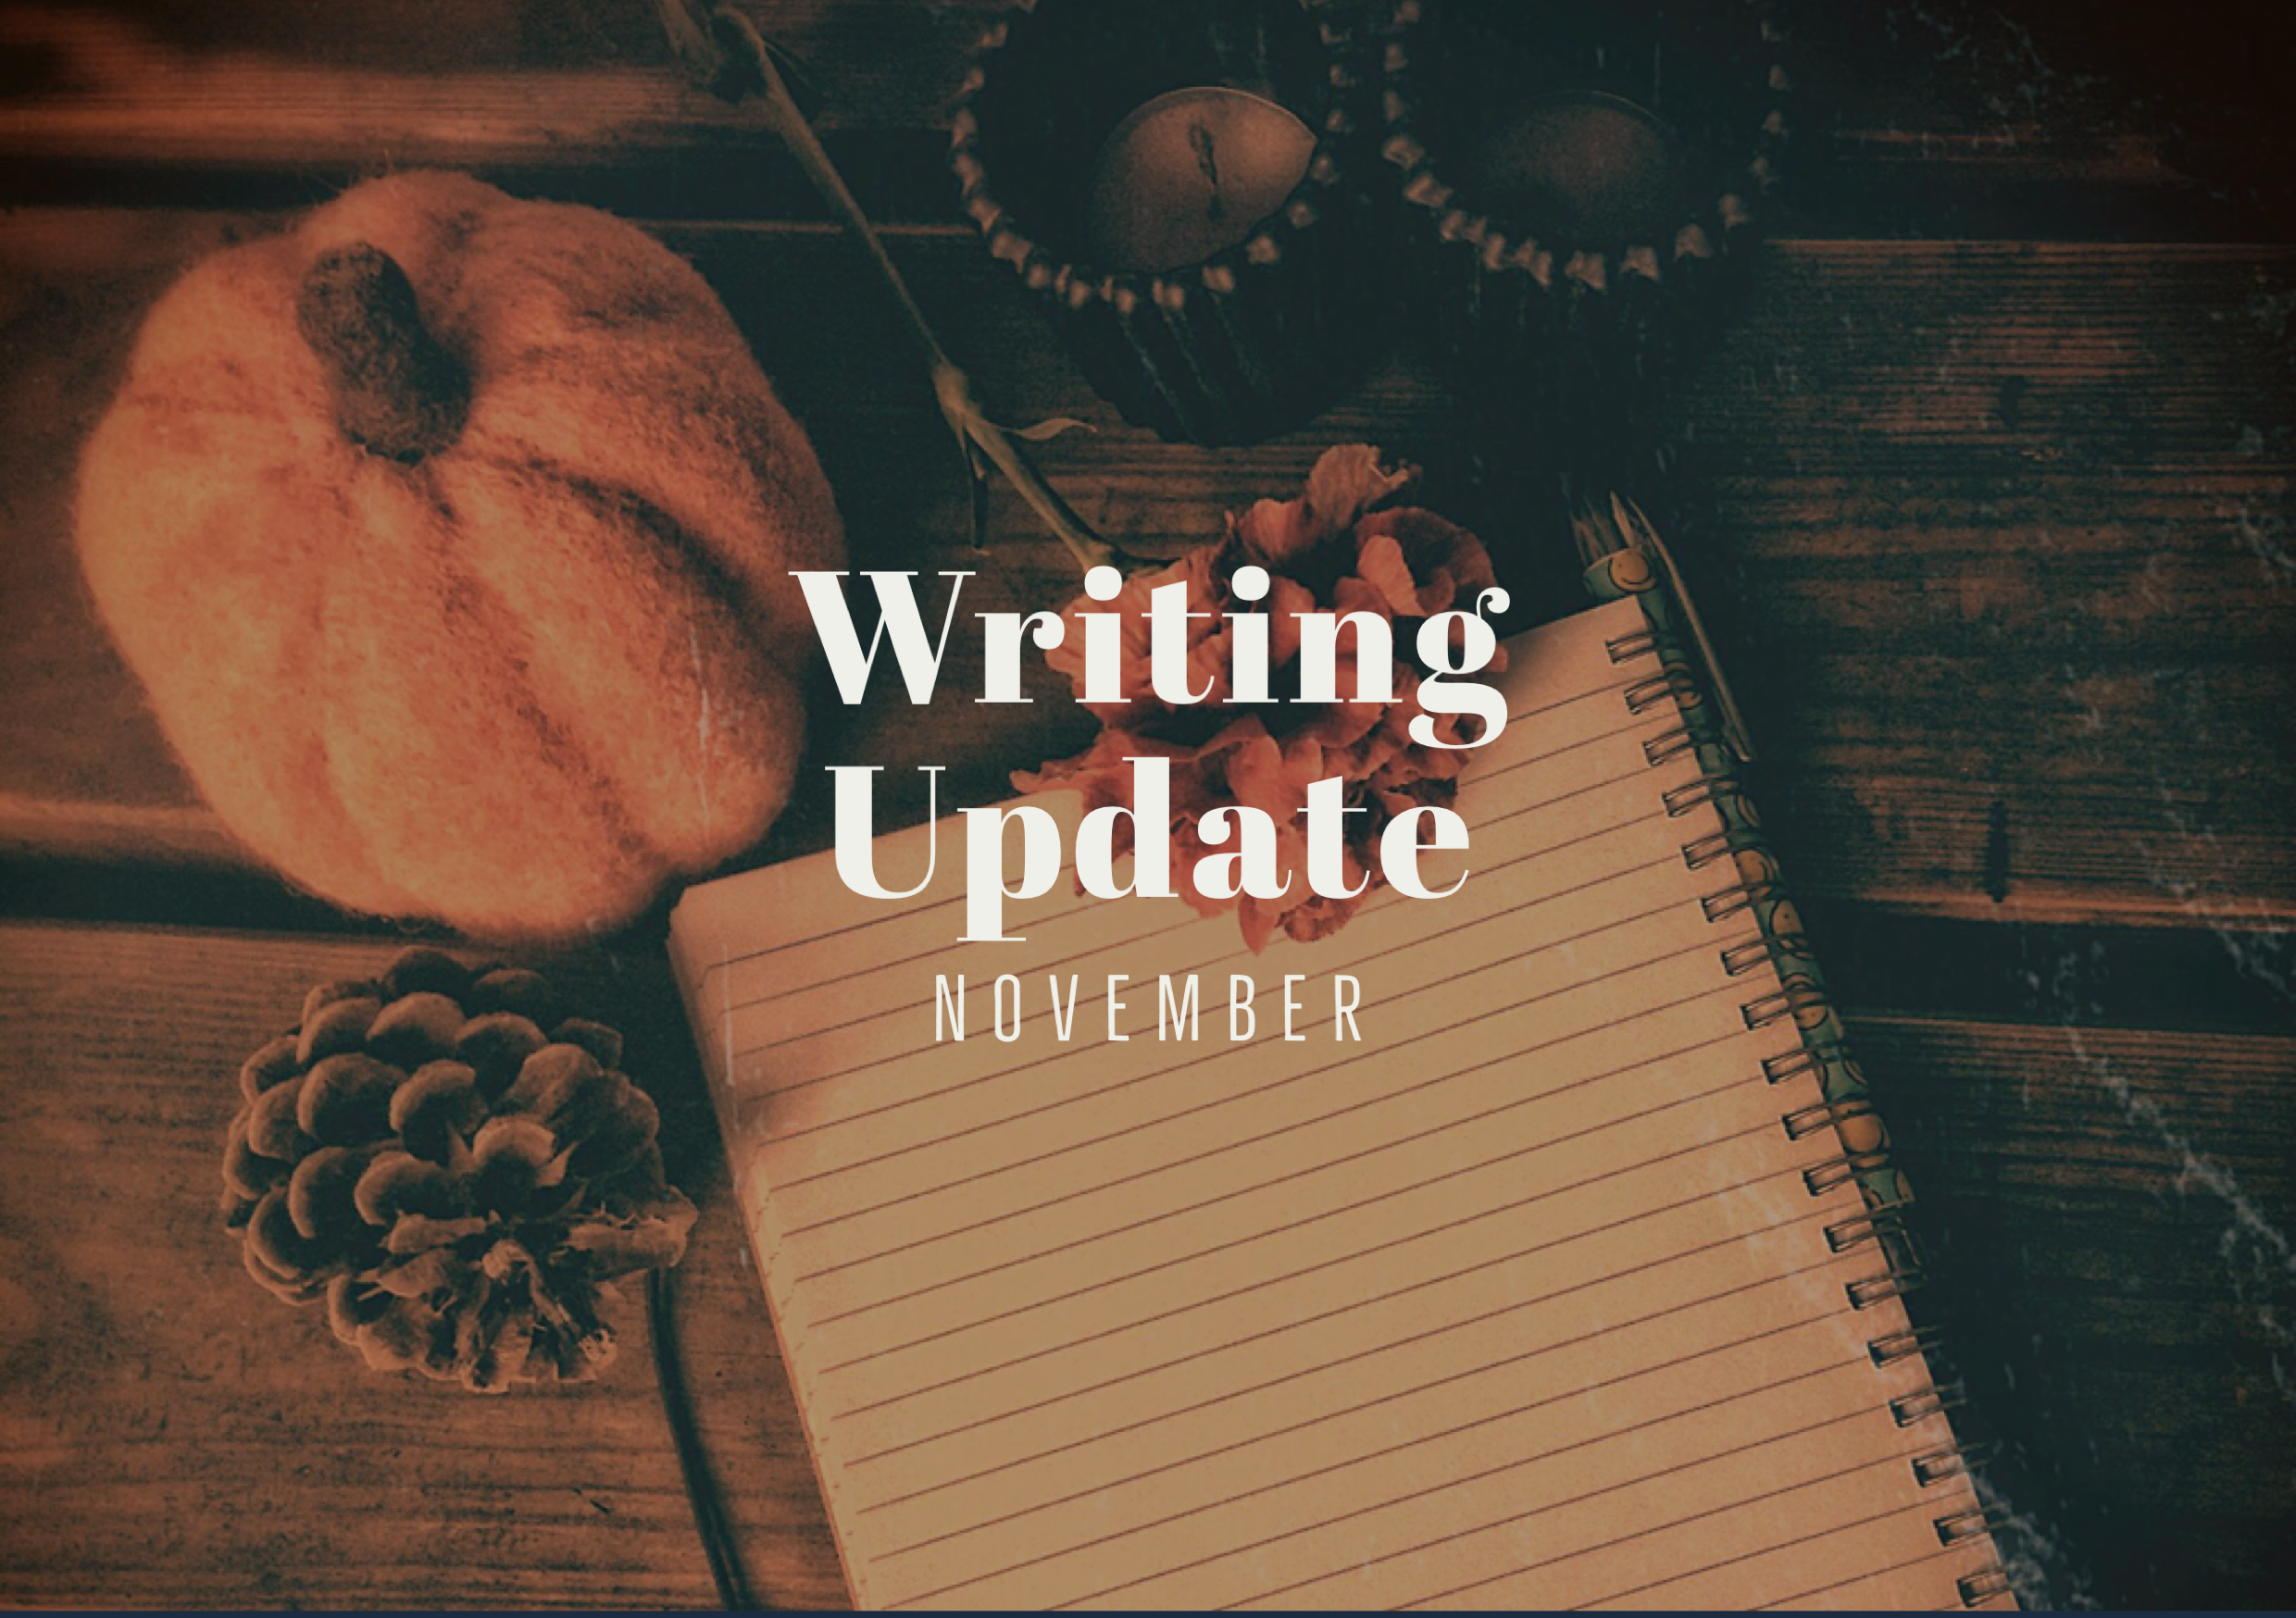 NOVEMBER 2019 Writing Update: Insomnia Saga, changes, new horizons